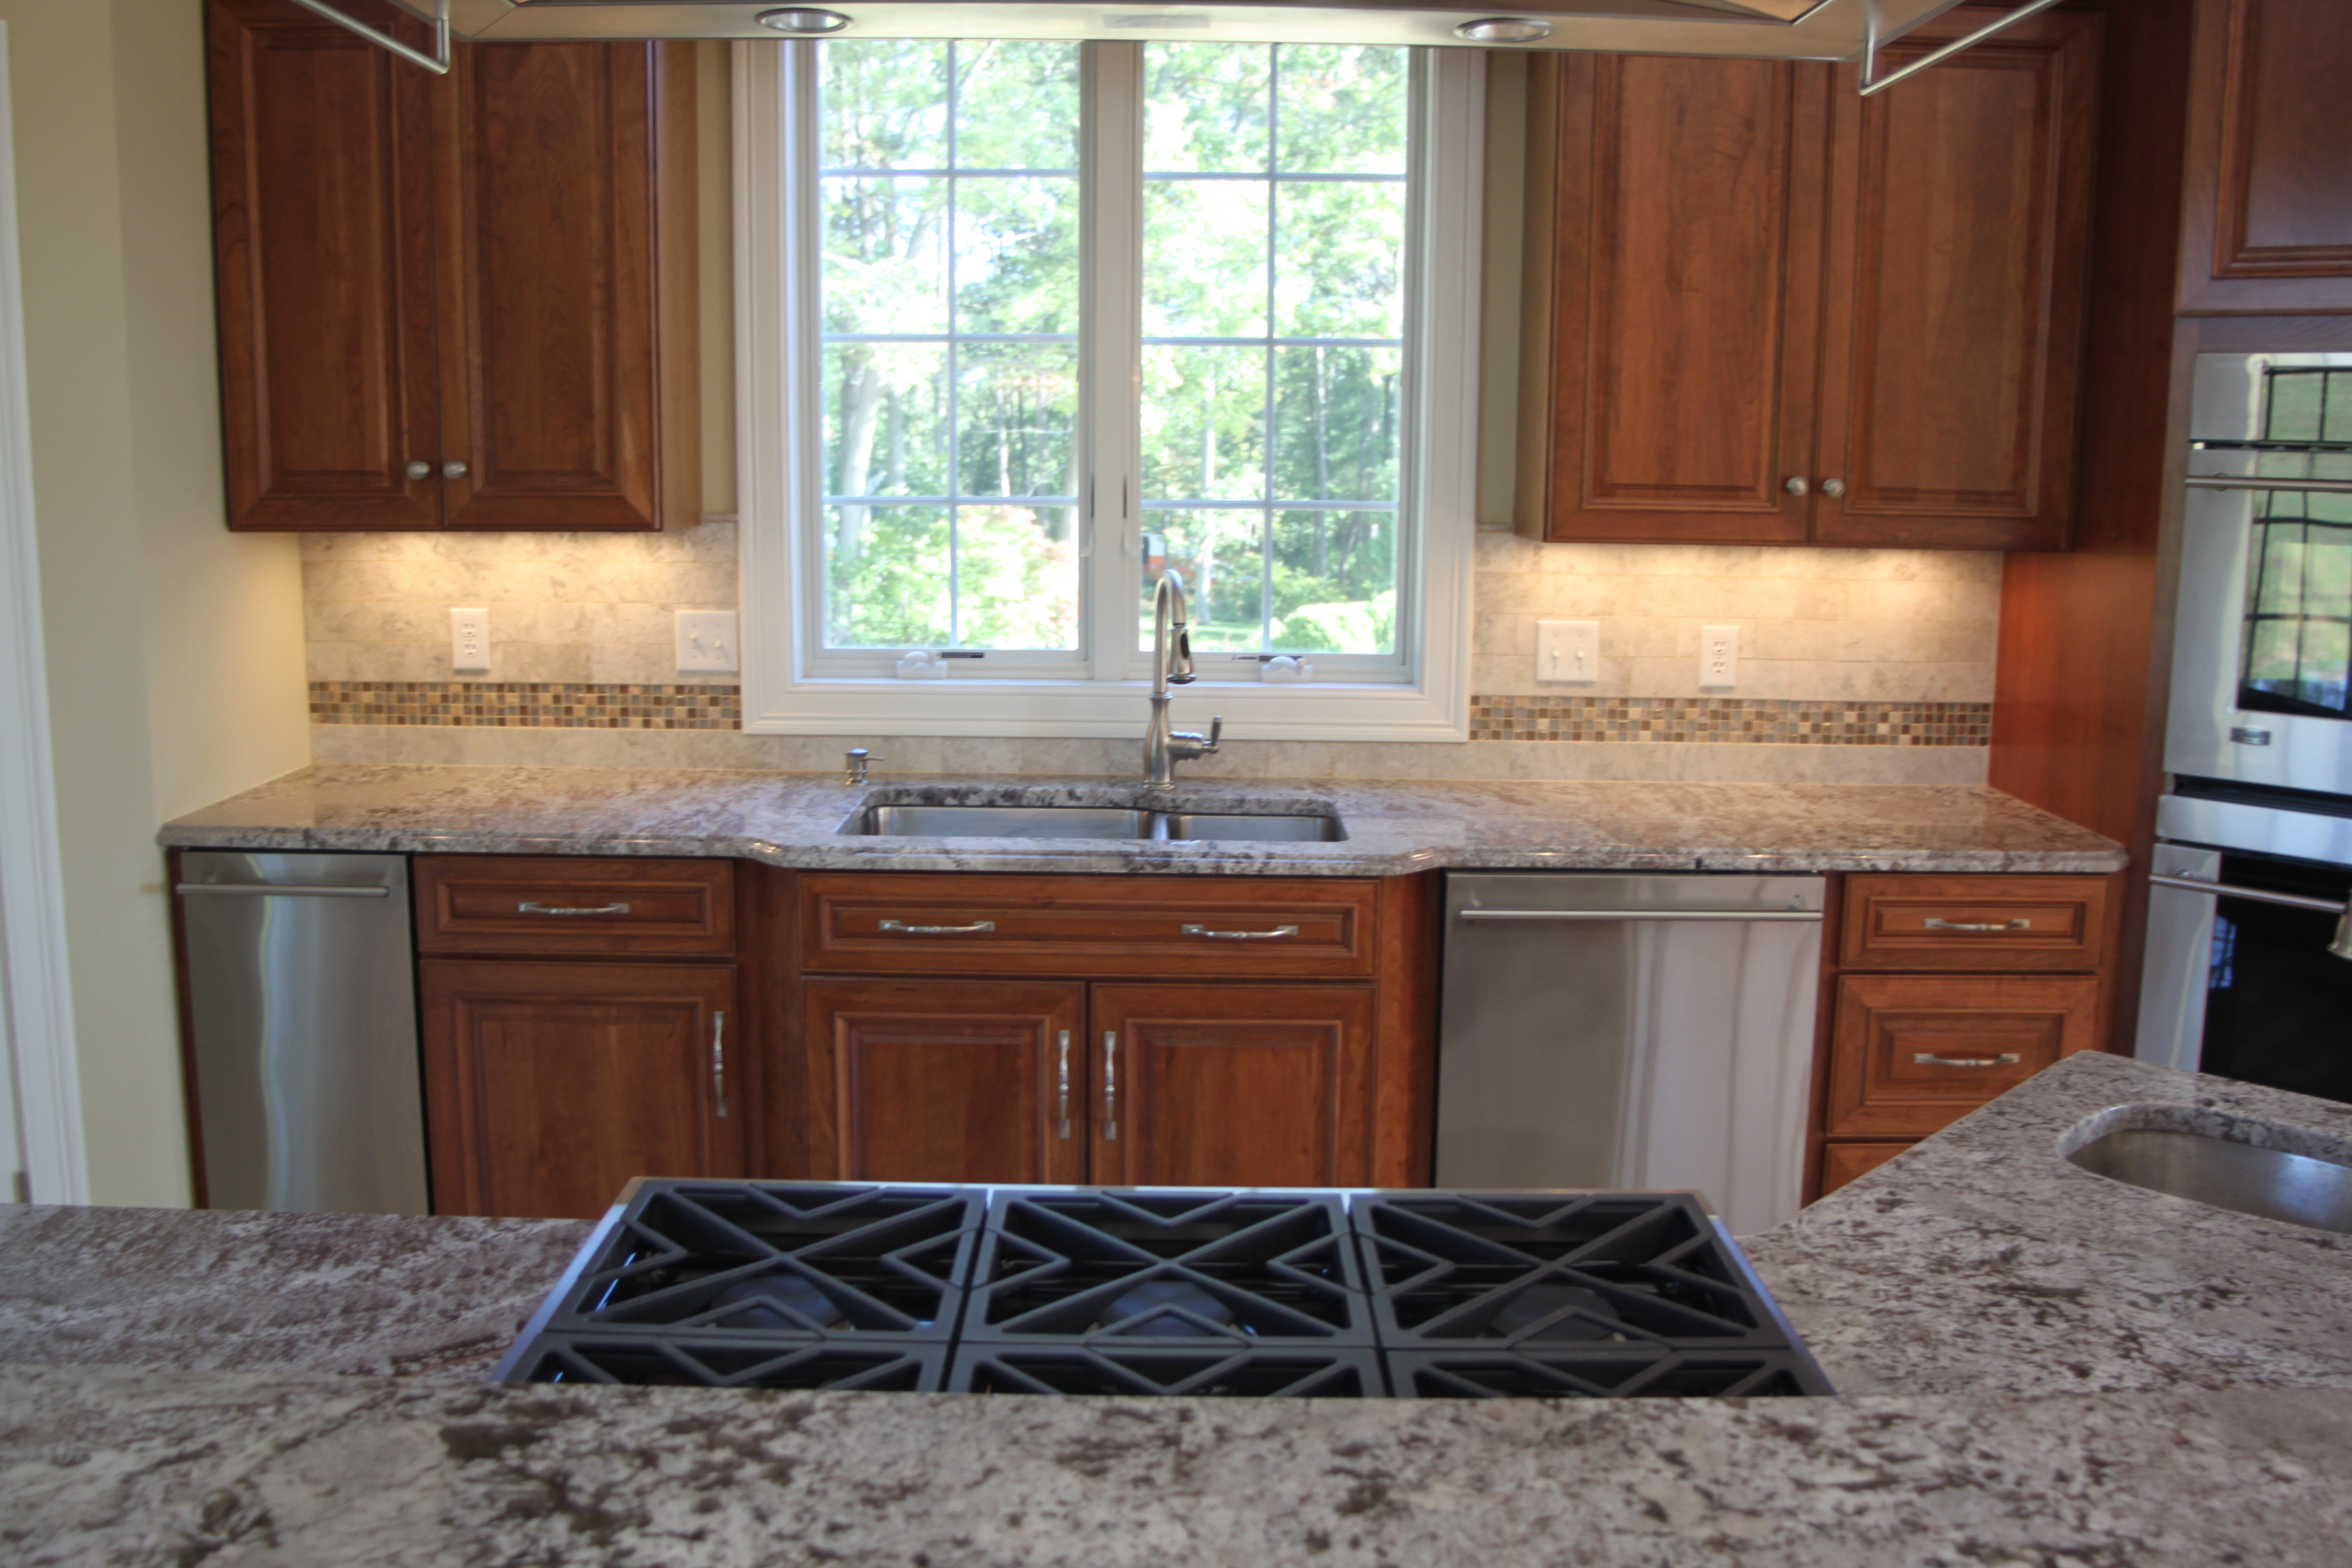 types of laminate hardwood floors of should your flooring match your kitchen cabinets or countertops intended for should your flooring match your kitchen cabinets or countertops